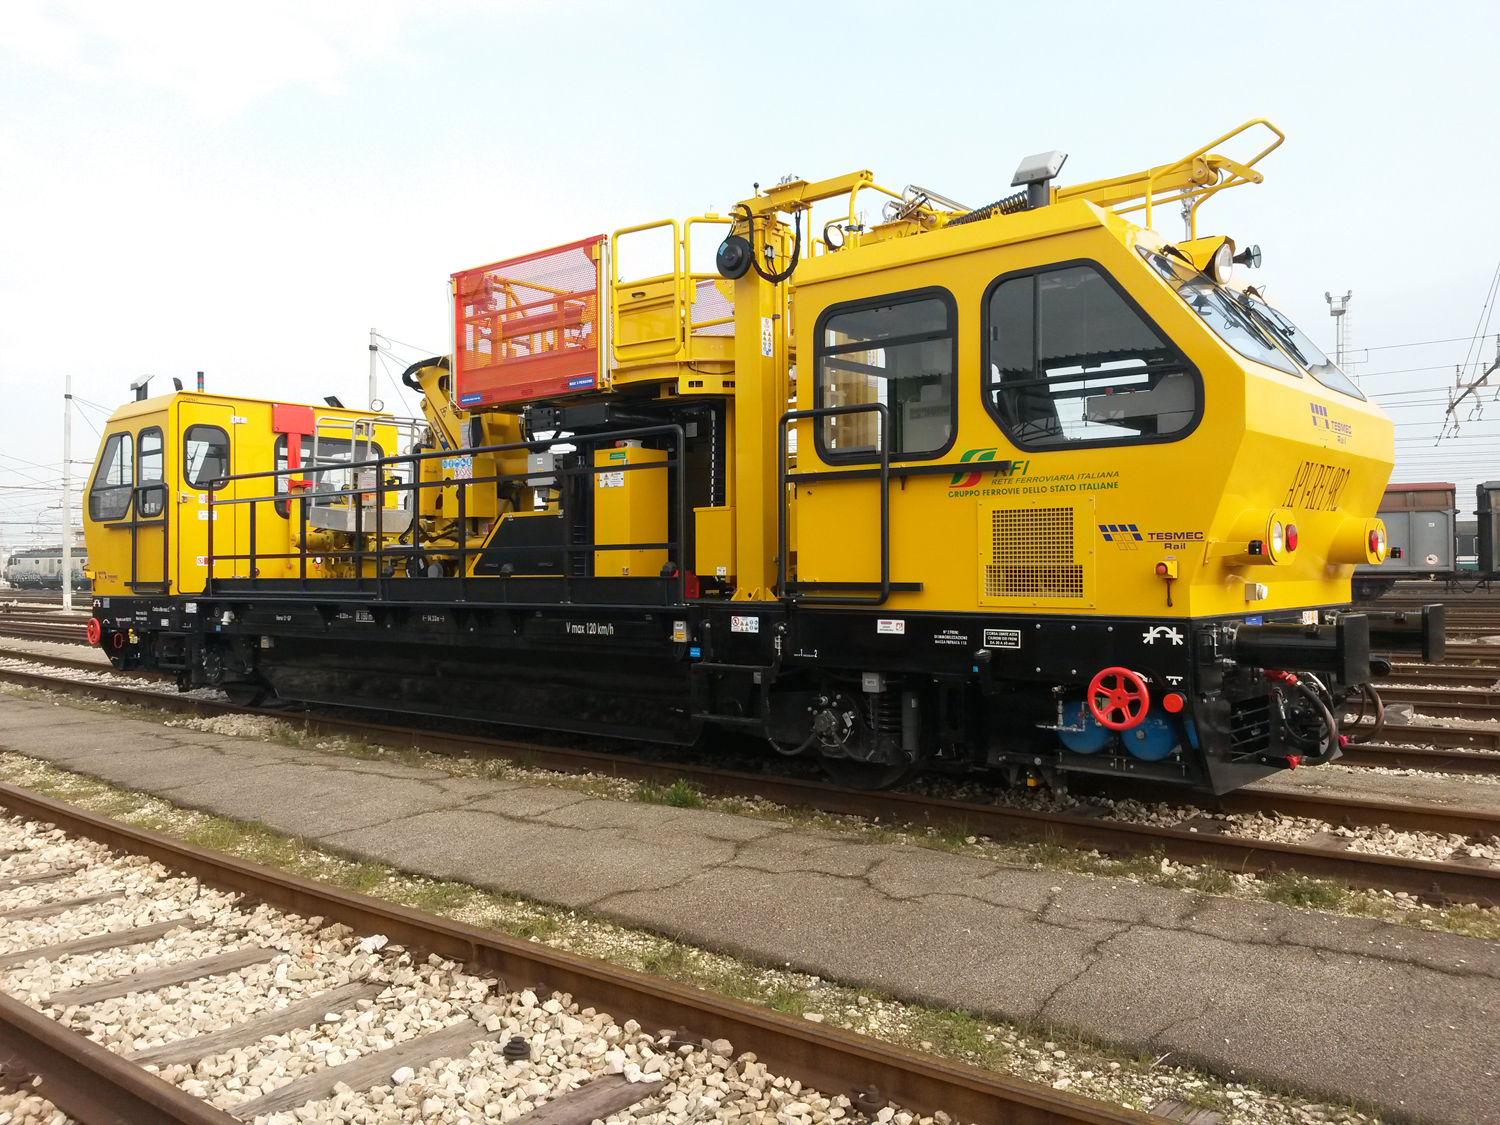 Tesmec OCPC400 Multipurpose Railway Maintenance Vehicle